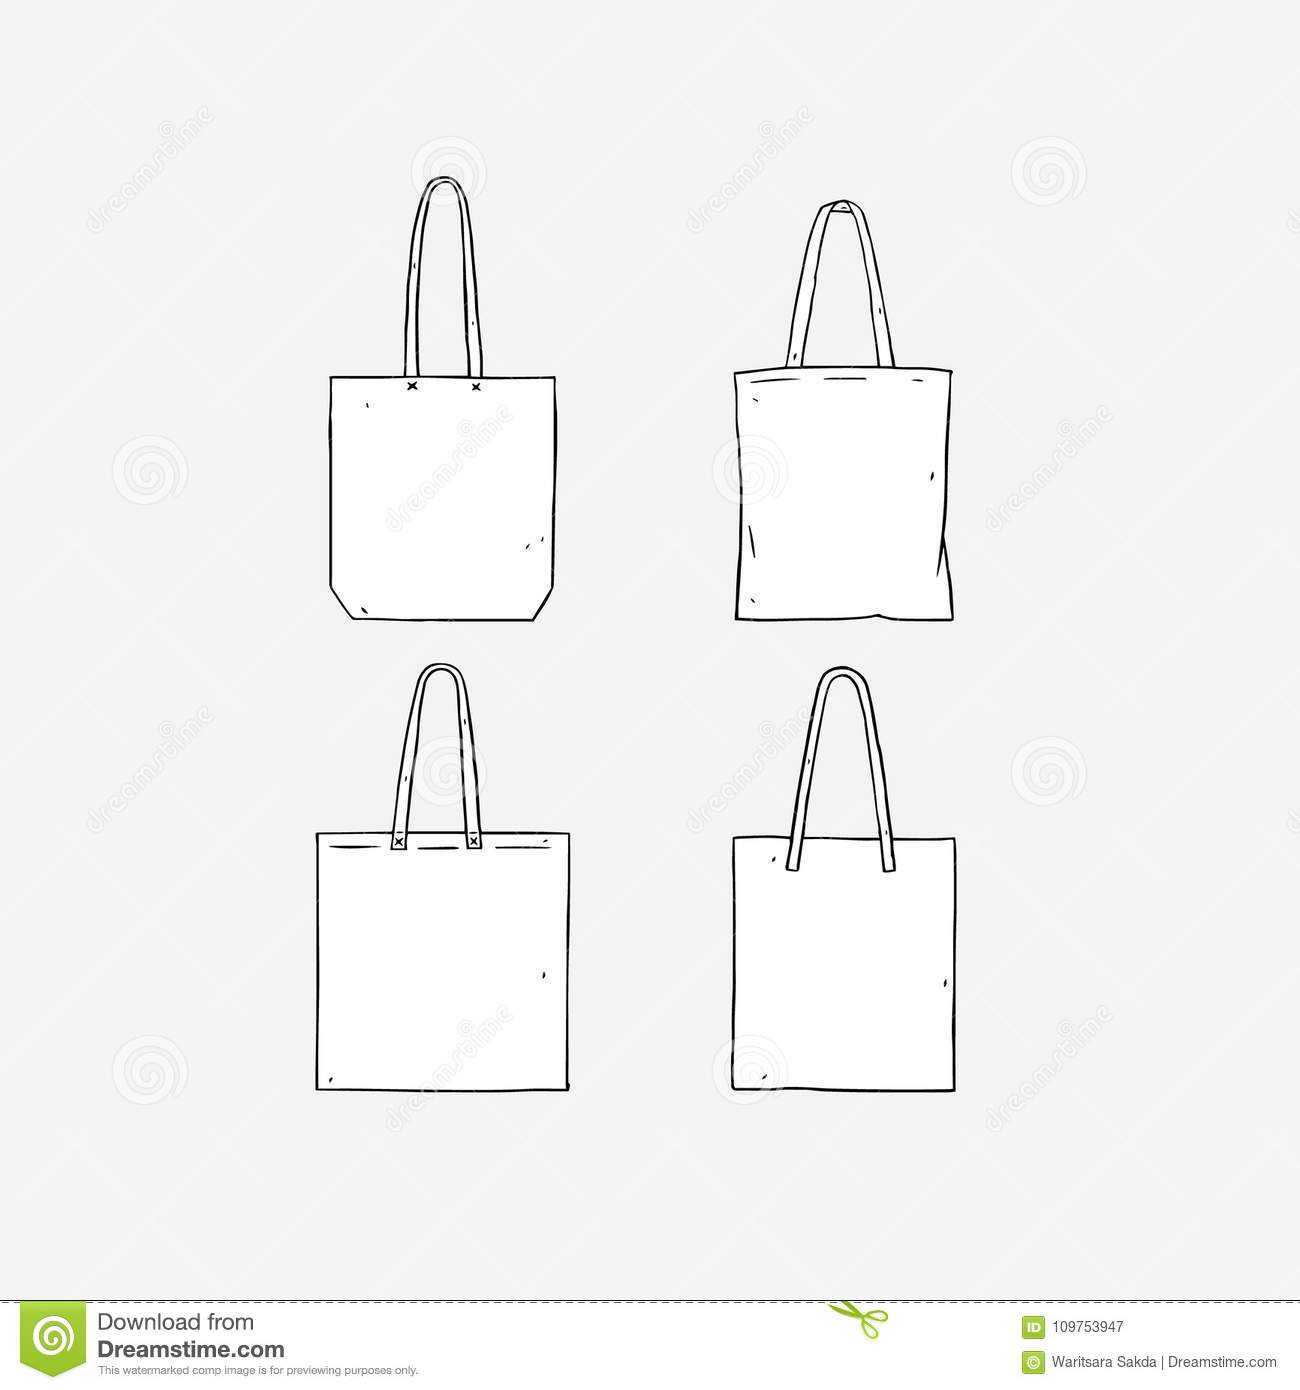 Tote bag template image collections template design ideas for Rottefella ntn freeride mounting template